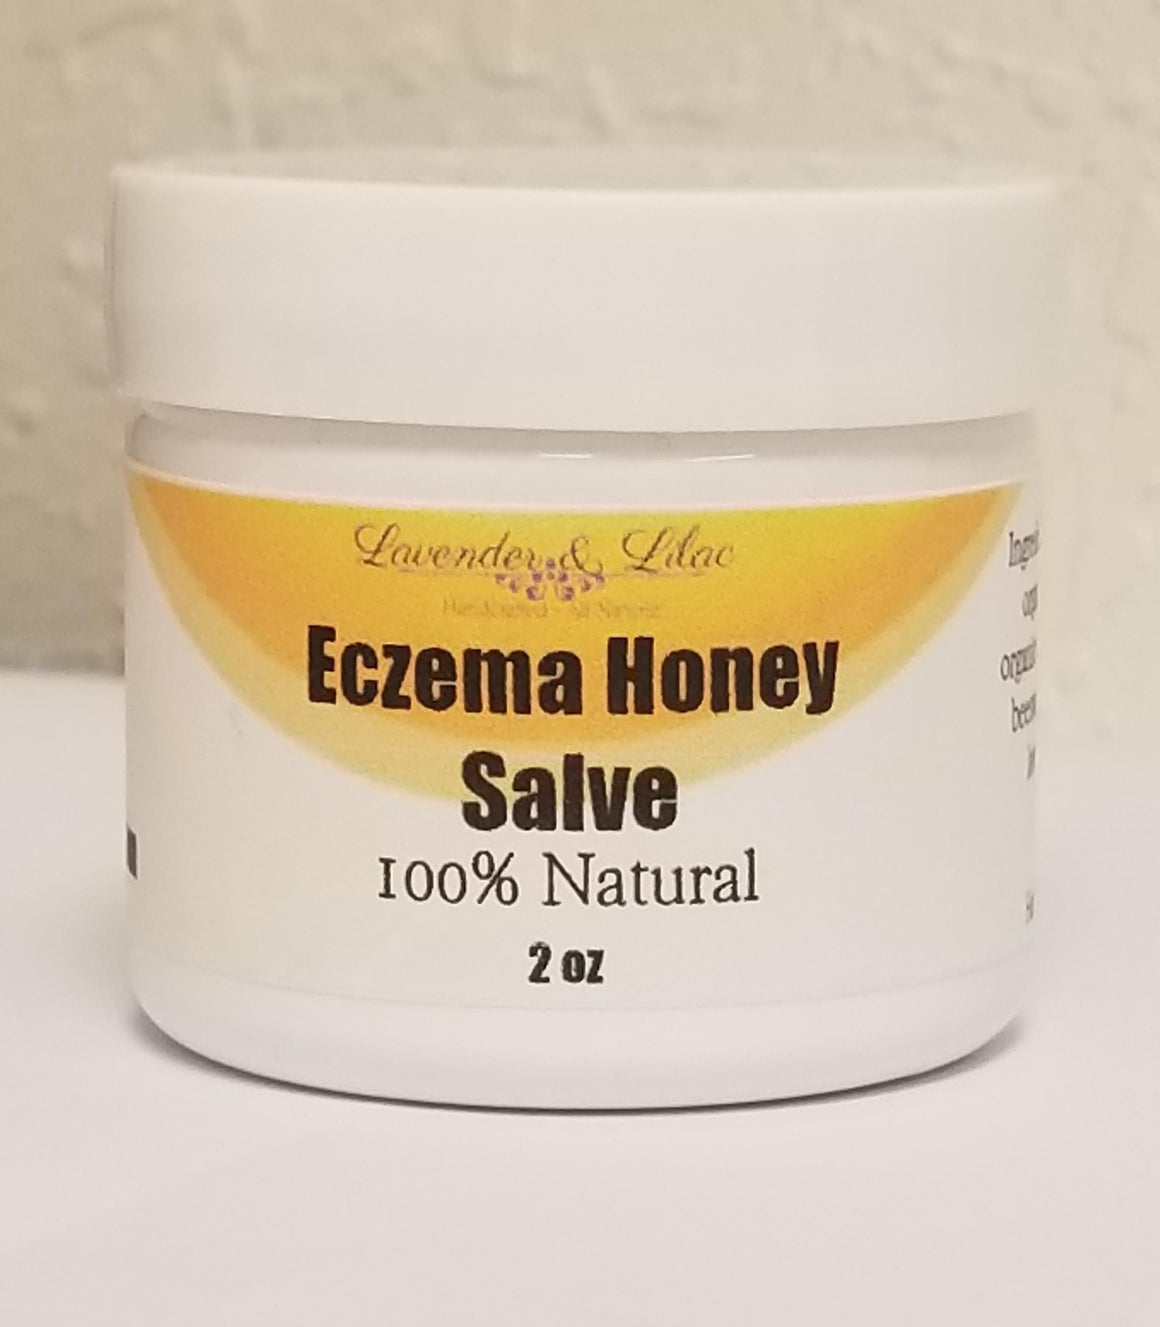 Eczema Honey Salve - Lavender & Lilac